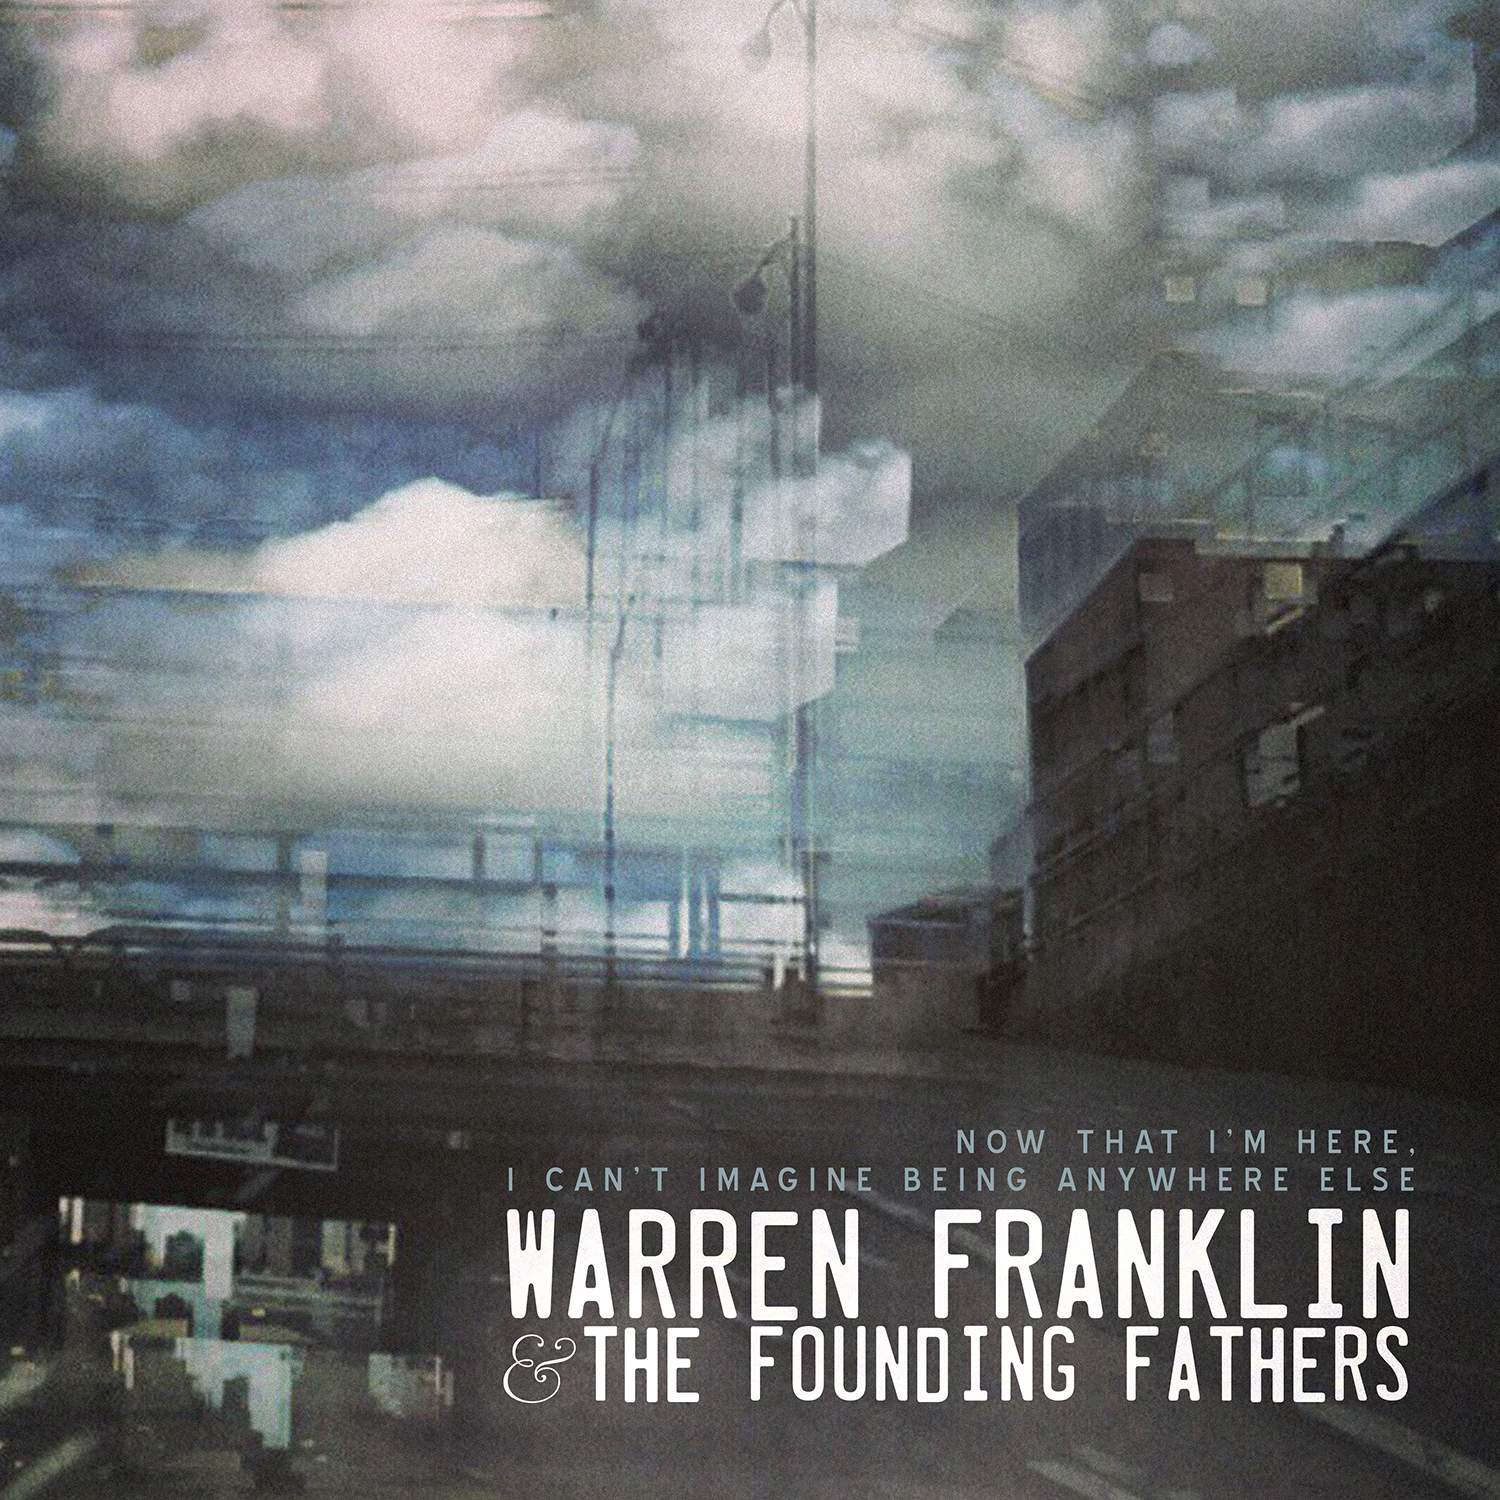 Now That I'm Here, I Can't Imagine Being Anywhere Else by Warren Franklin & the Founding Fathers